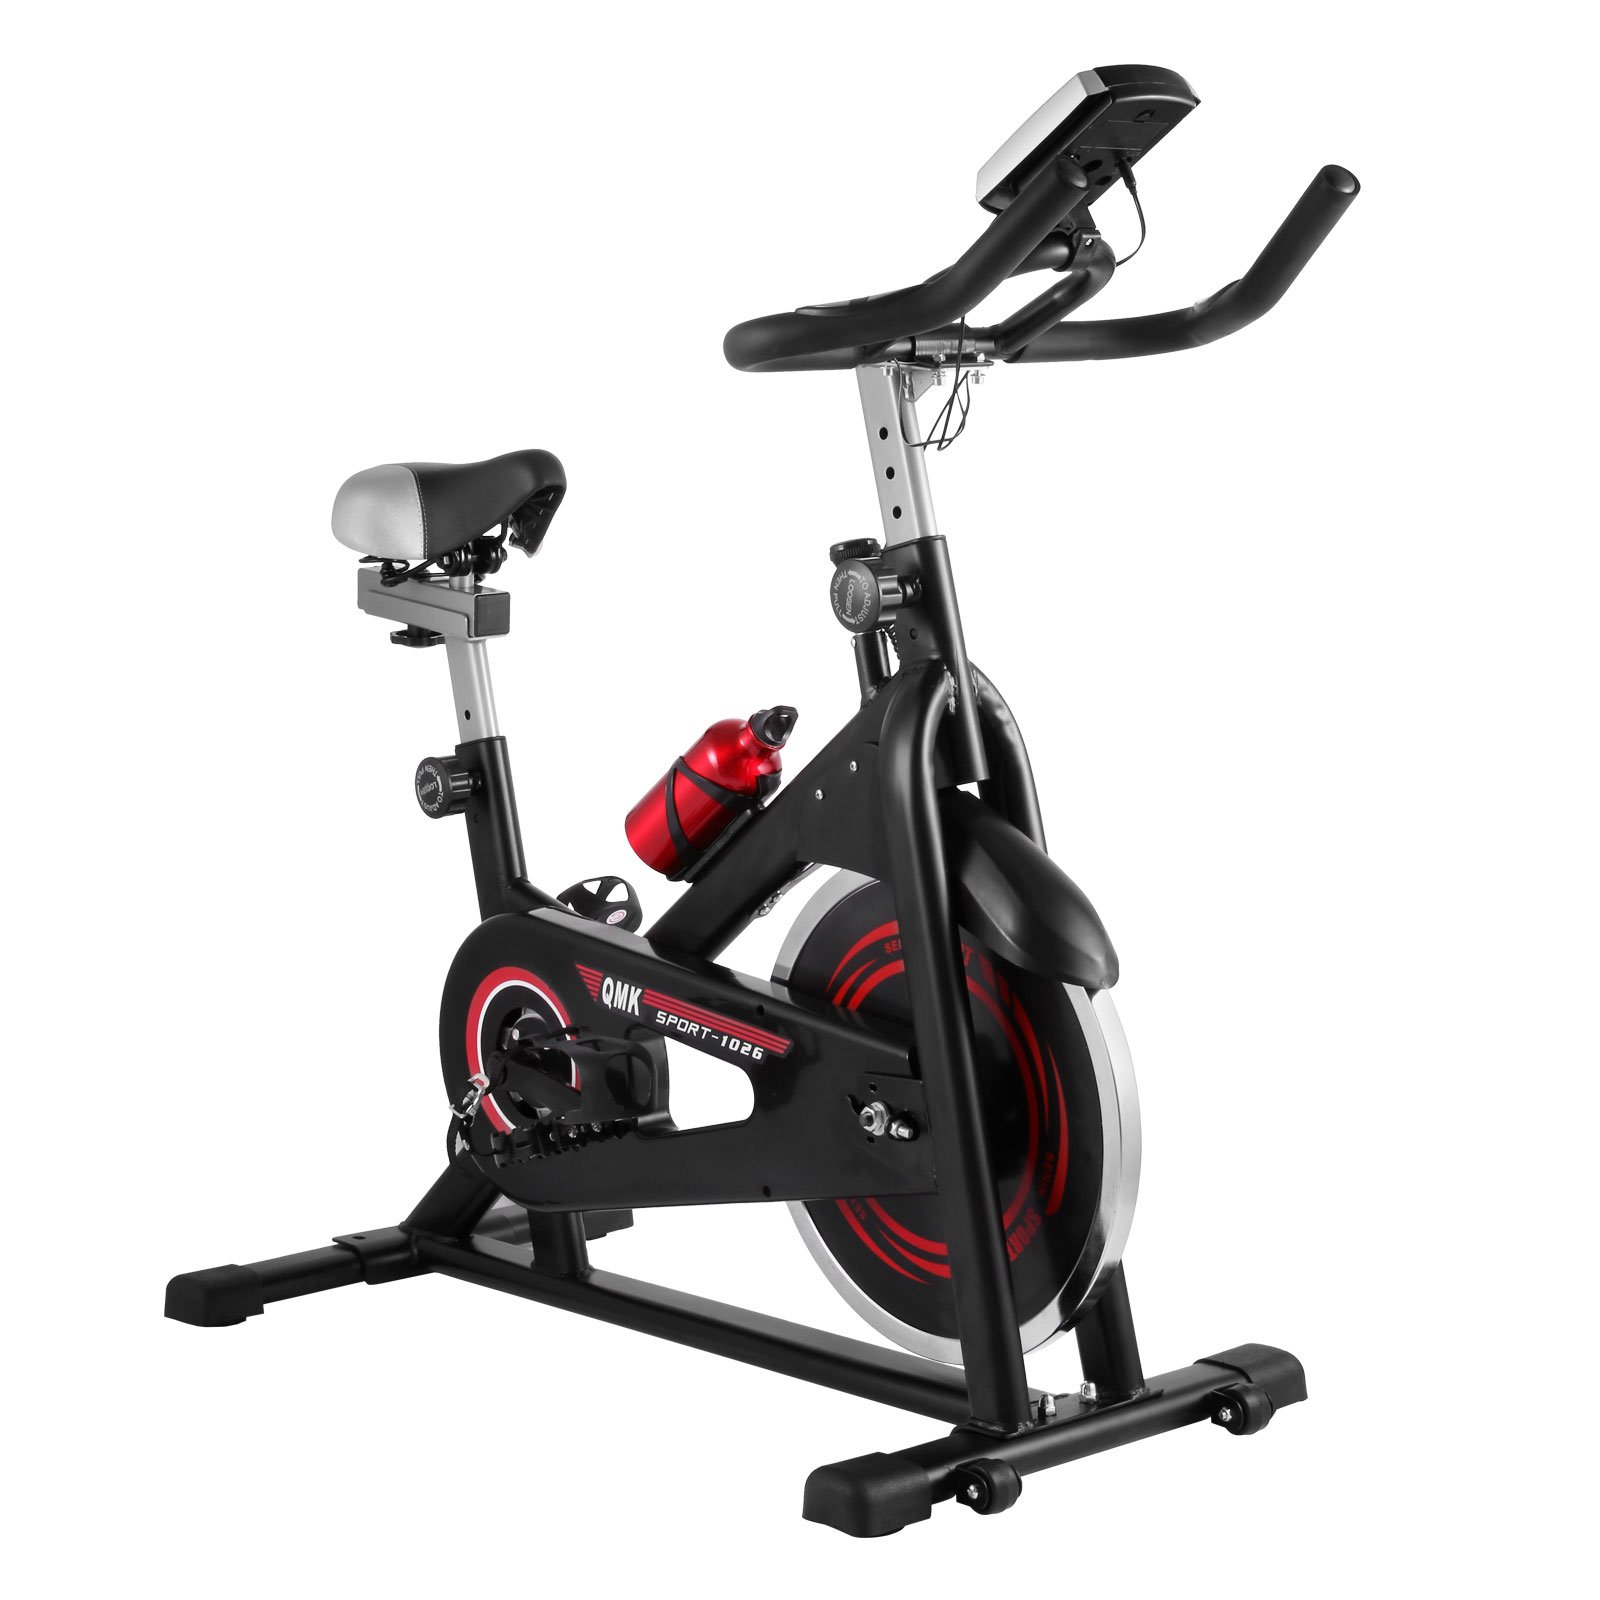 Happybuy Indoor Cycle Bike Adjustable Exercise Bike Cardio Workout Stationary Trainer Bicycle with LCD Display and Water Bottle for Indoor Healthy Fitness Exercising (JSC009)